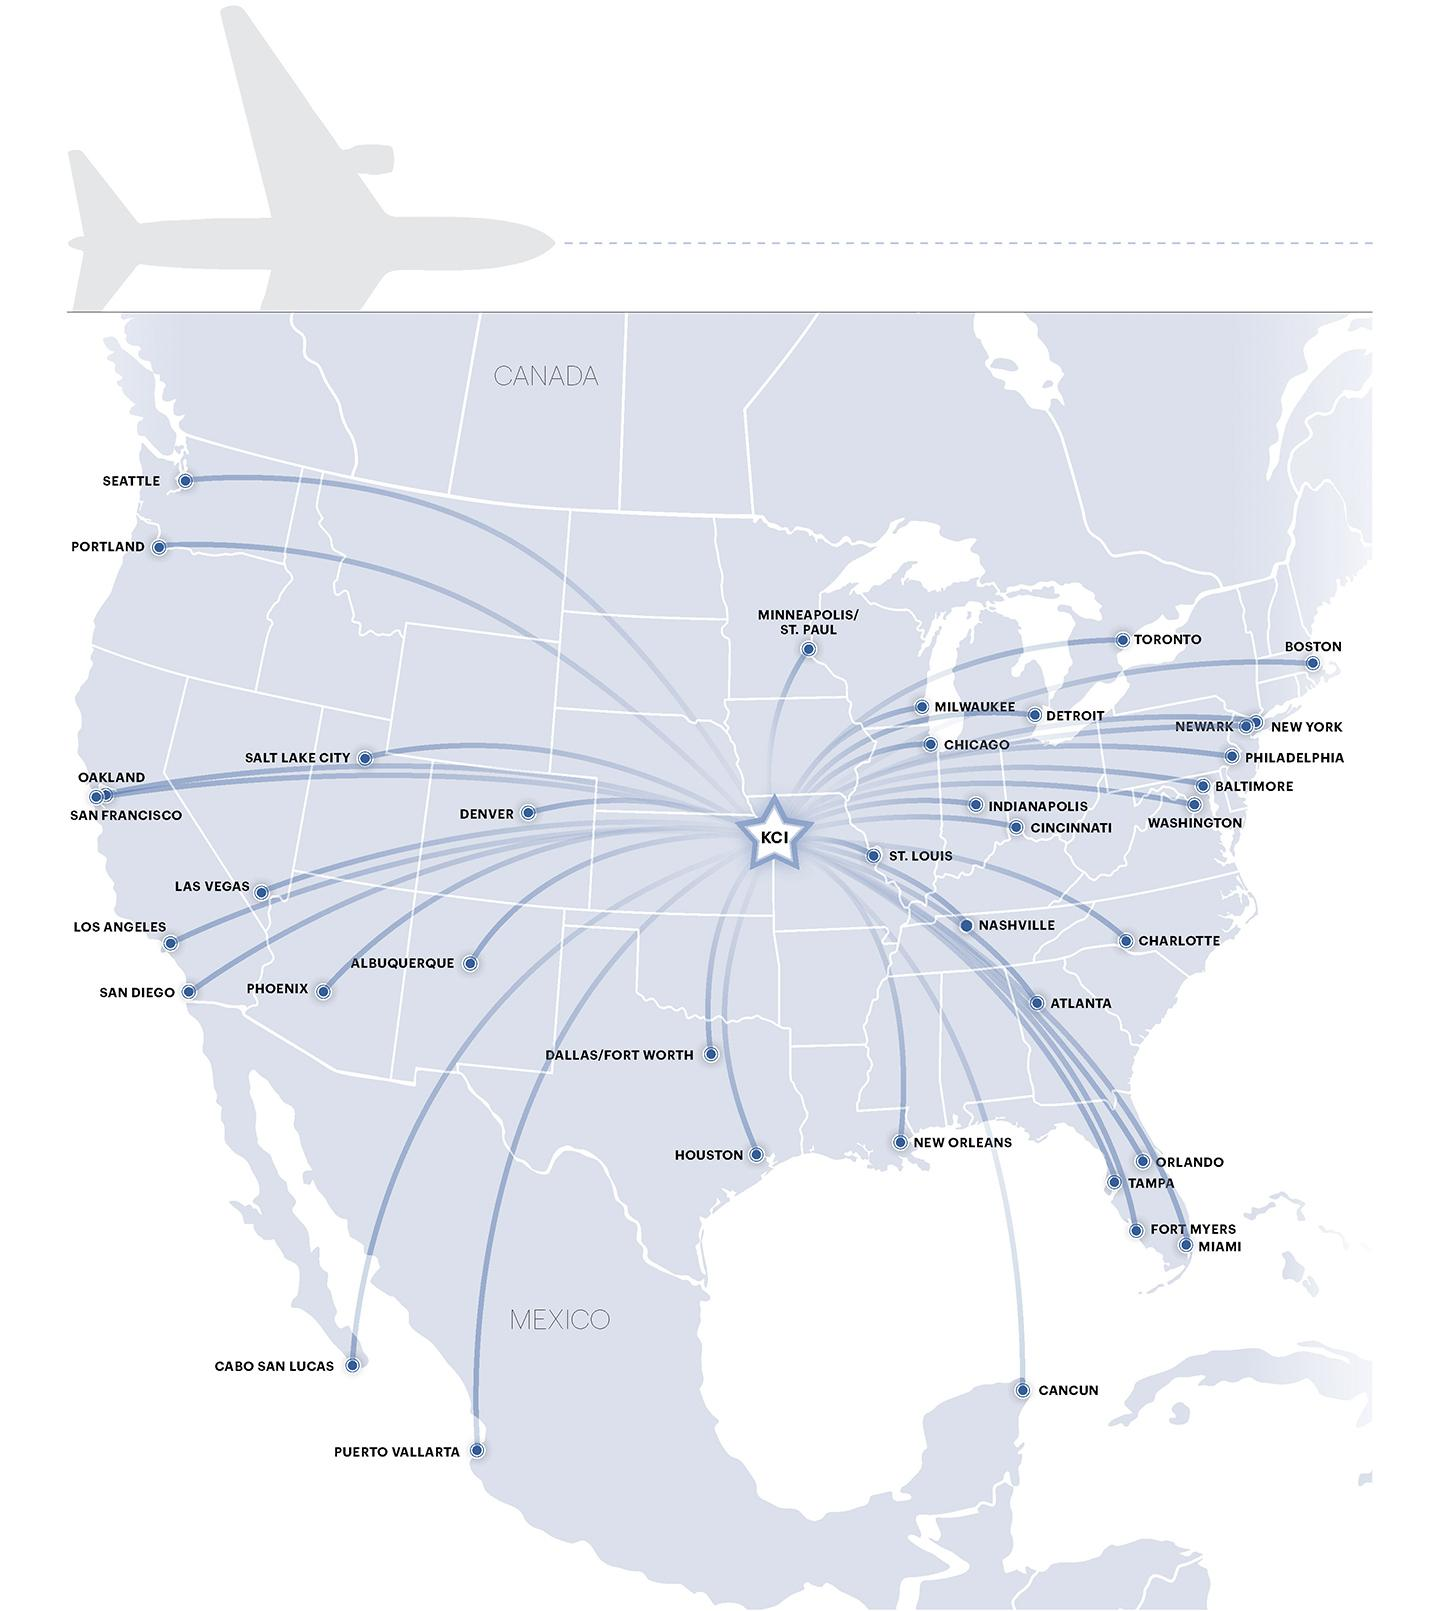 Mci Travel Deals - Kansas City Vacation Packages (MCI) - Southwest Vacations